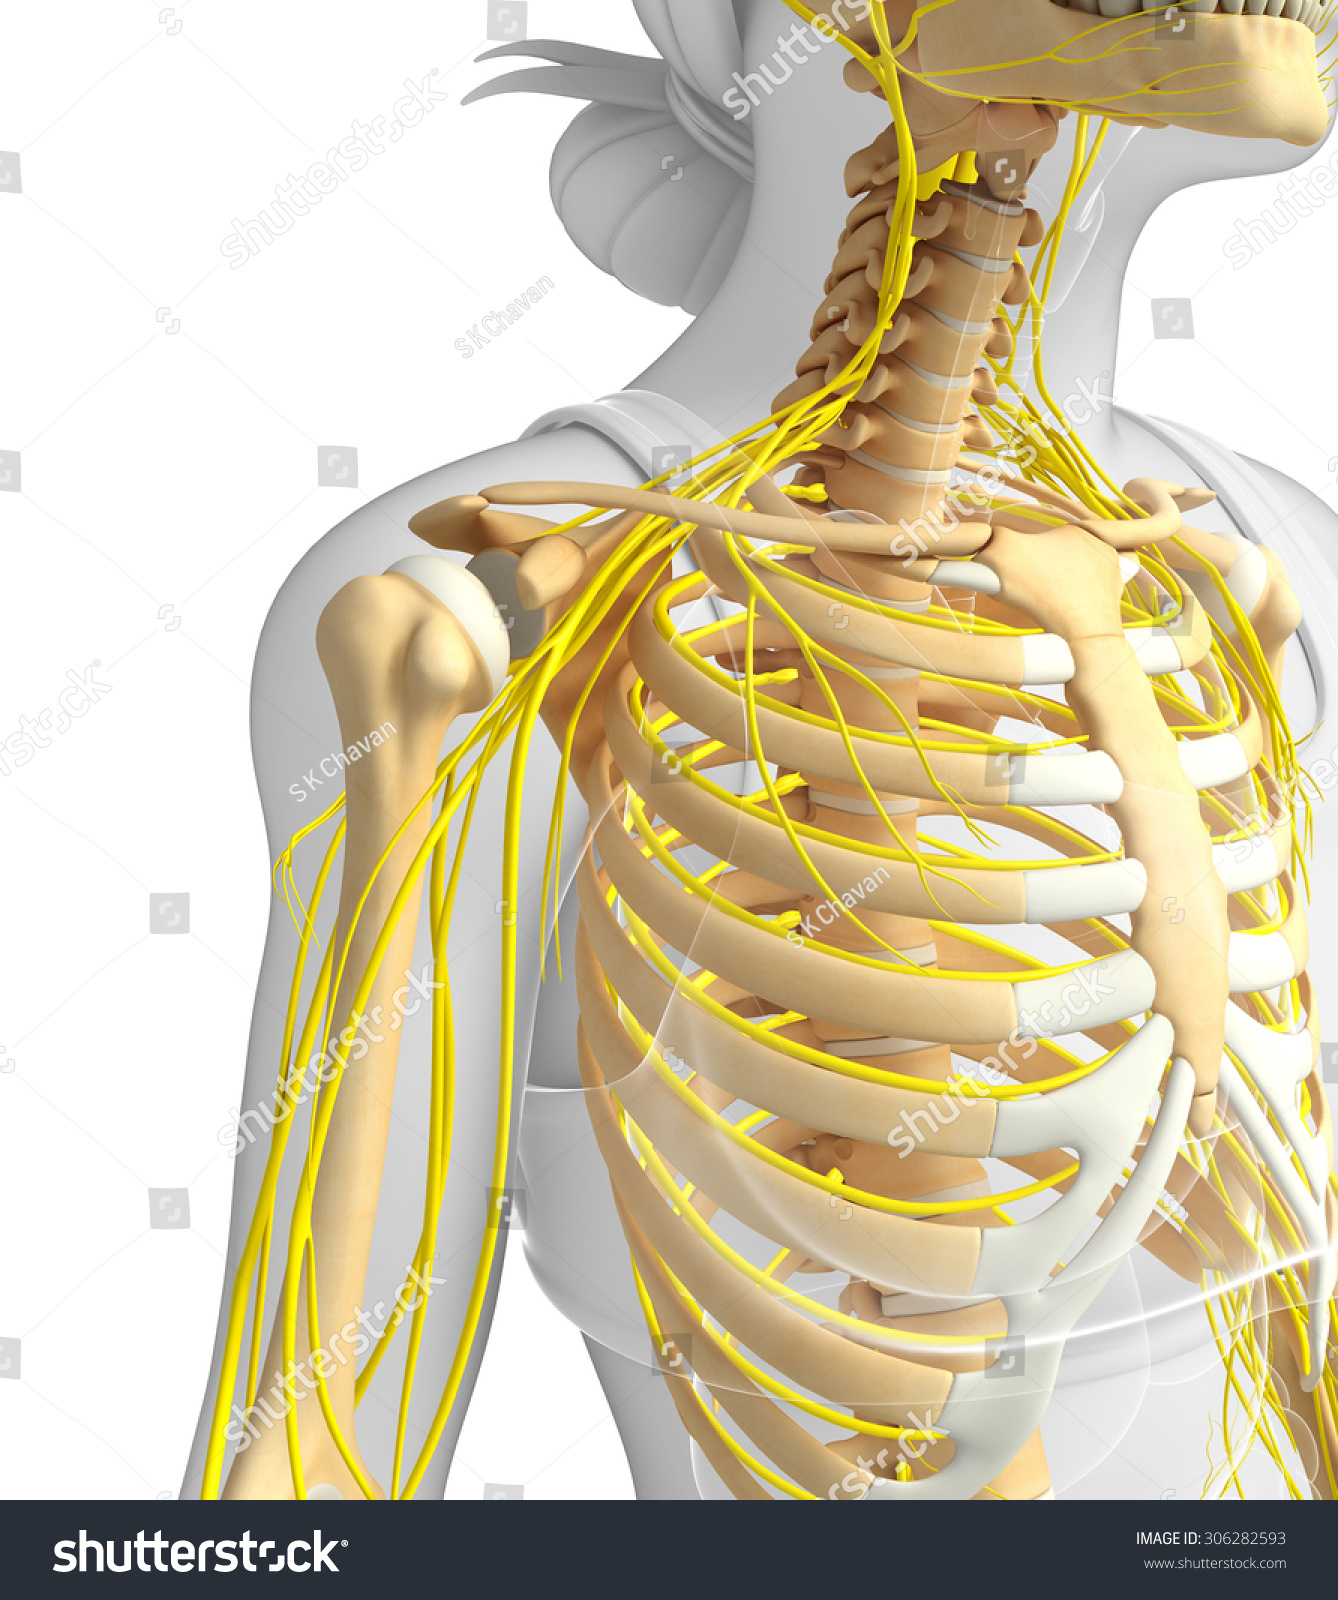 Illustration Female Ribcage Nervous System Stock Illustration